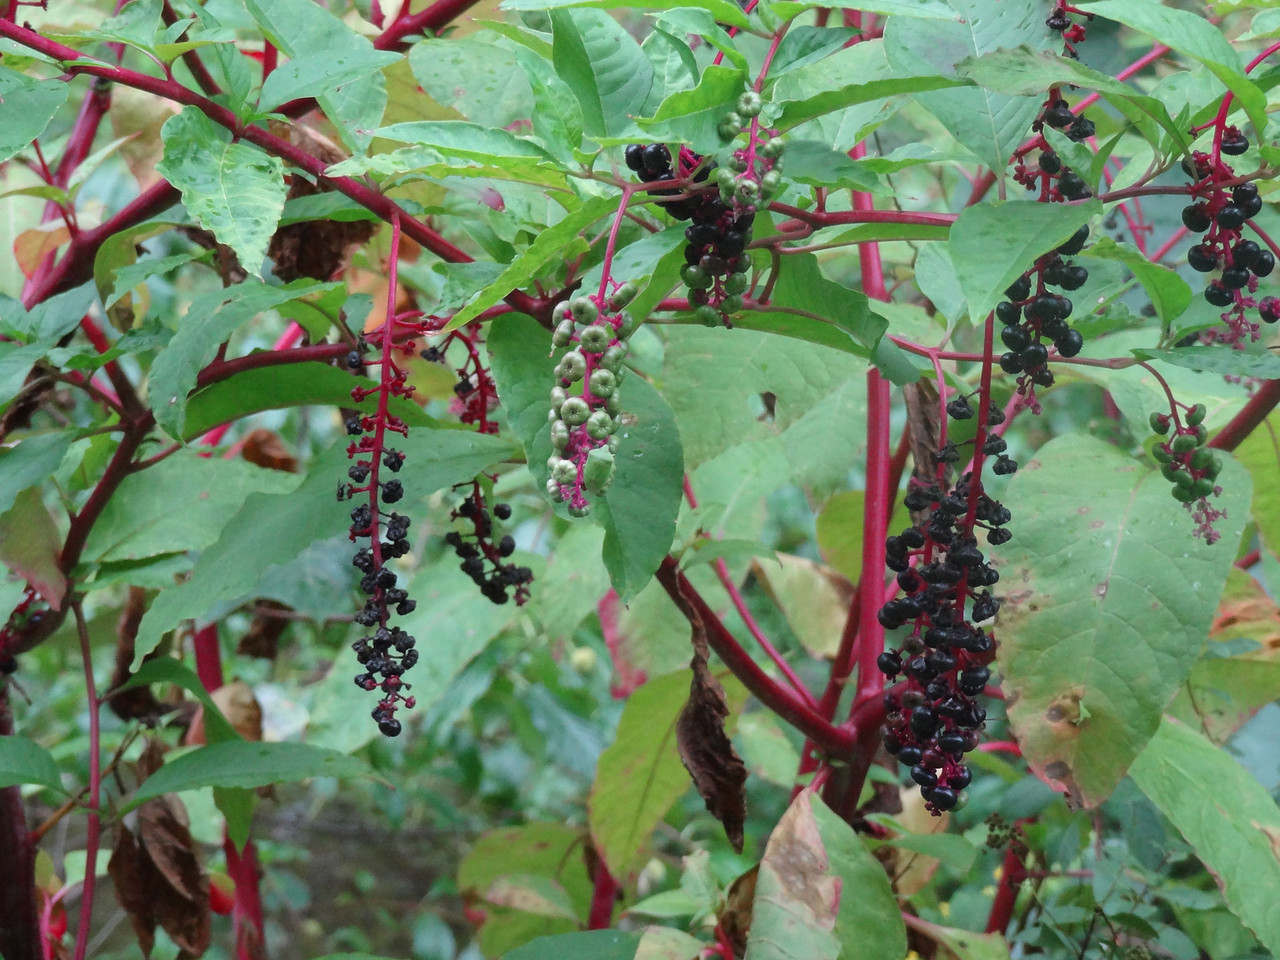 """Pokeweed berries. highly toxic seeds and roots, but the young shoots in the spring (IF BOILED IN 4 CHANGES OF WATER) are supposed to be delicious. I am an adventurous eater but this is a little crazy. And who is the bafoon who determined 4 changes of water is good? <br /> <br /> """"Well, I reckon my first three kids died from eating pokeweed shoots boiled once, twice, and three times. Lets see if Little Cletus survives if I boil it four times. Eureka!"""""""